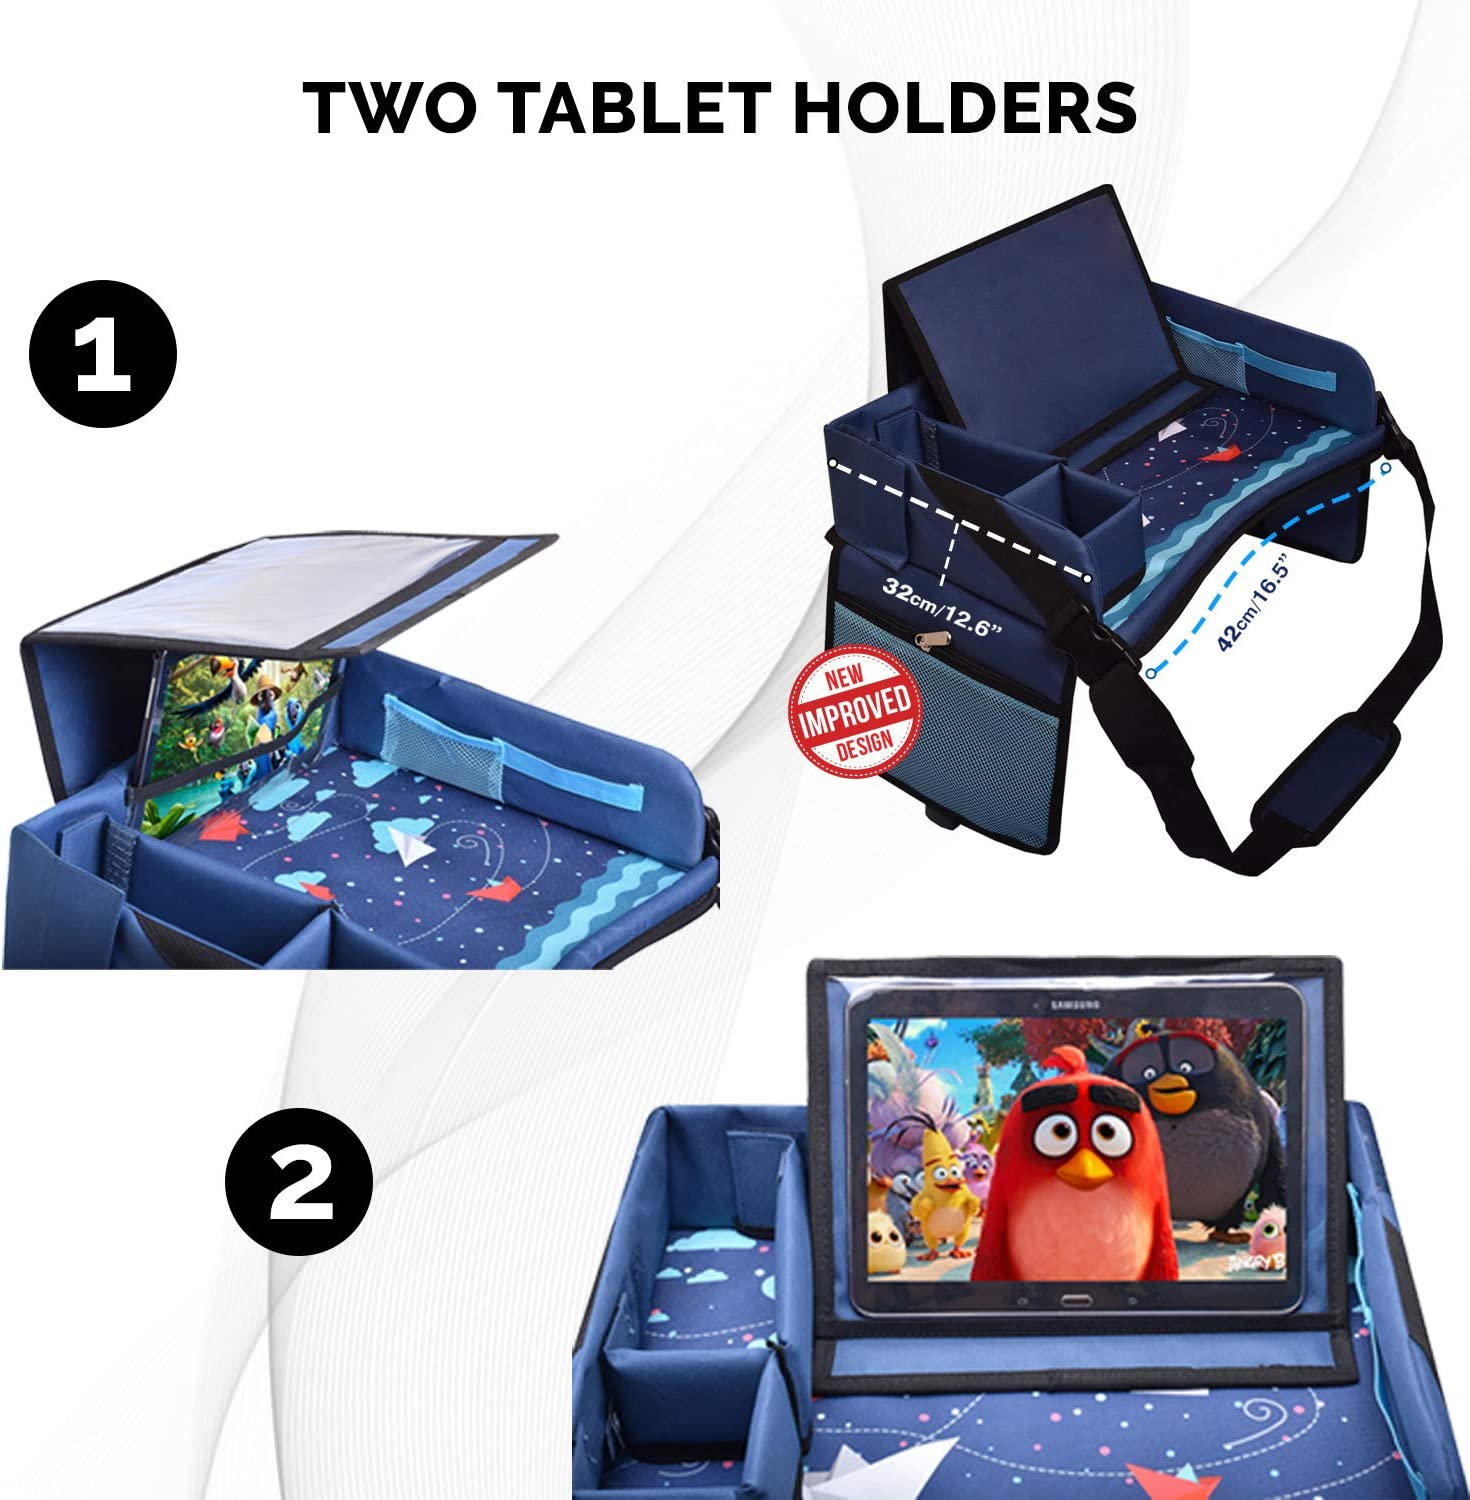 Padded Comfort Base Blue Mesh Snack Pockets Tablet Holder DMoose Travel Lap Activity Tray for Kids and Toddlers Stroller New Side Walls Airplane Play and Learn Area Waterproof Car Seat